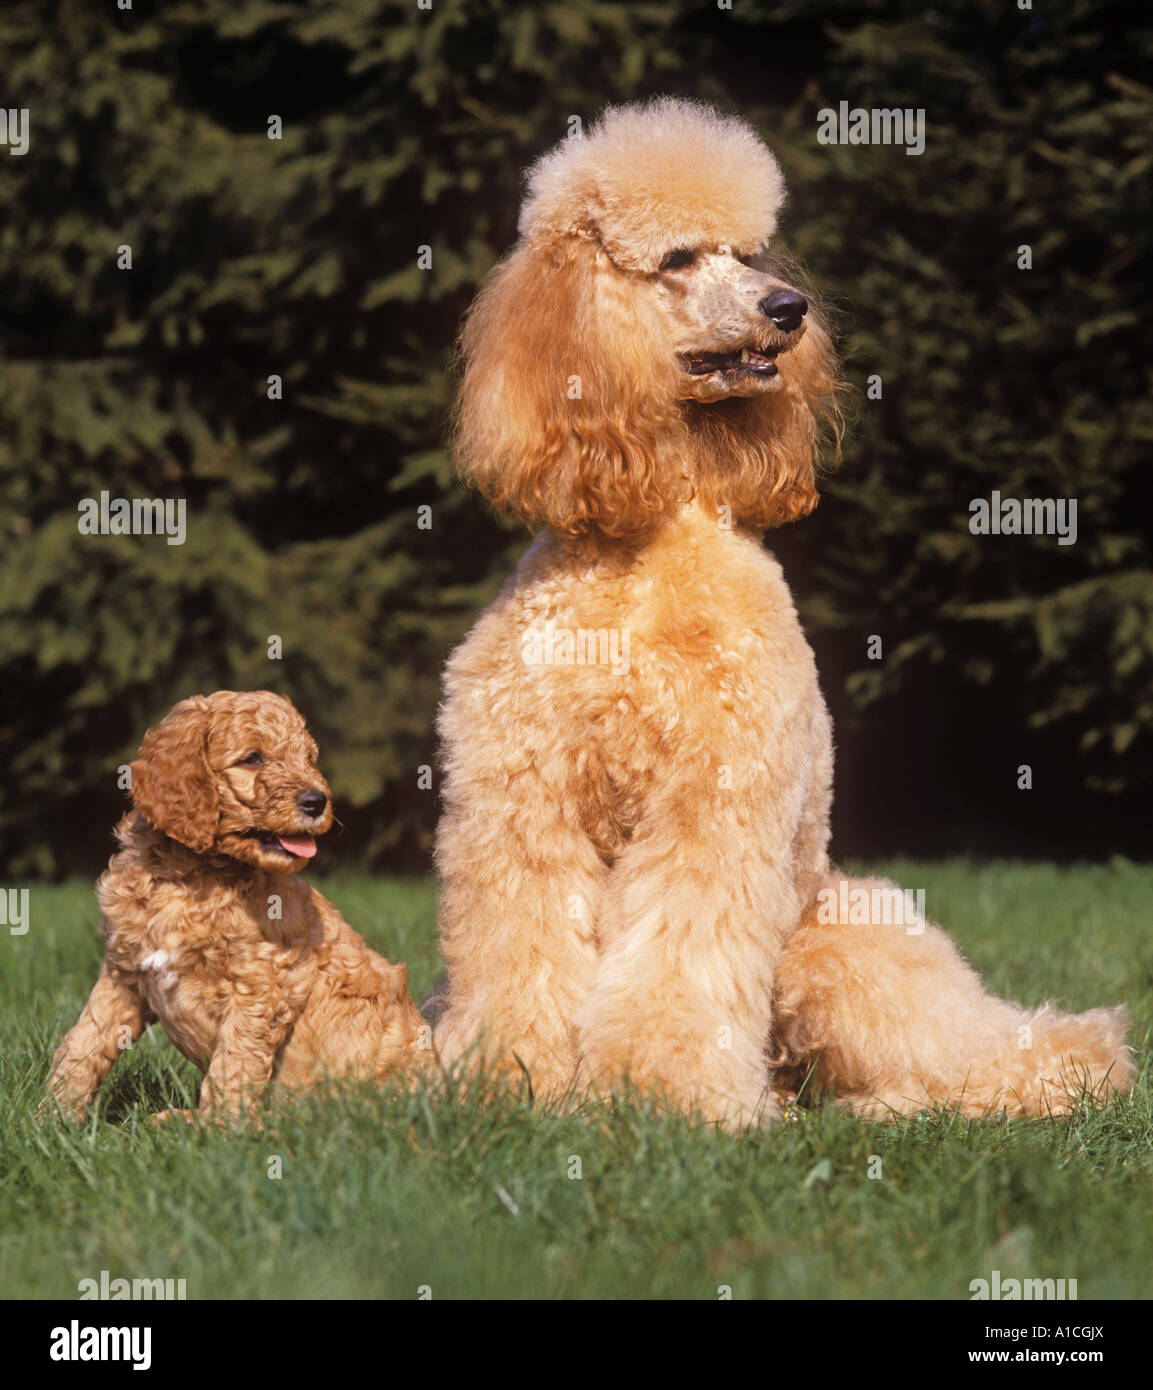 Standard Poodle Apricot And Puppy On Meadow Stock Photo Alamy